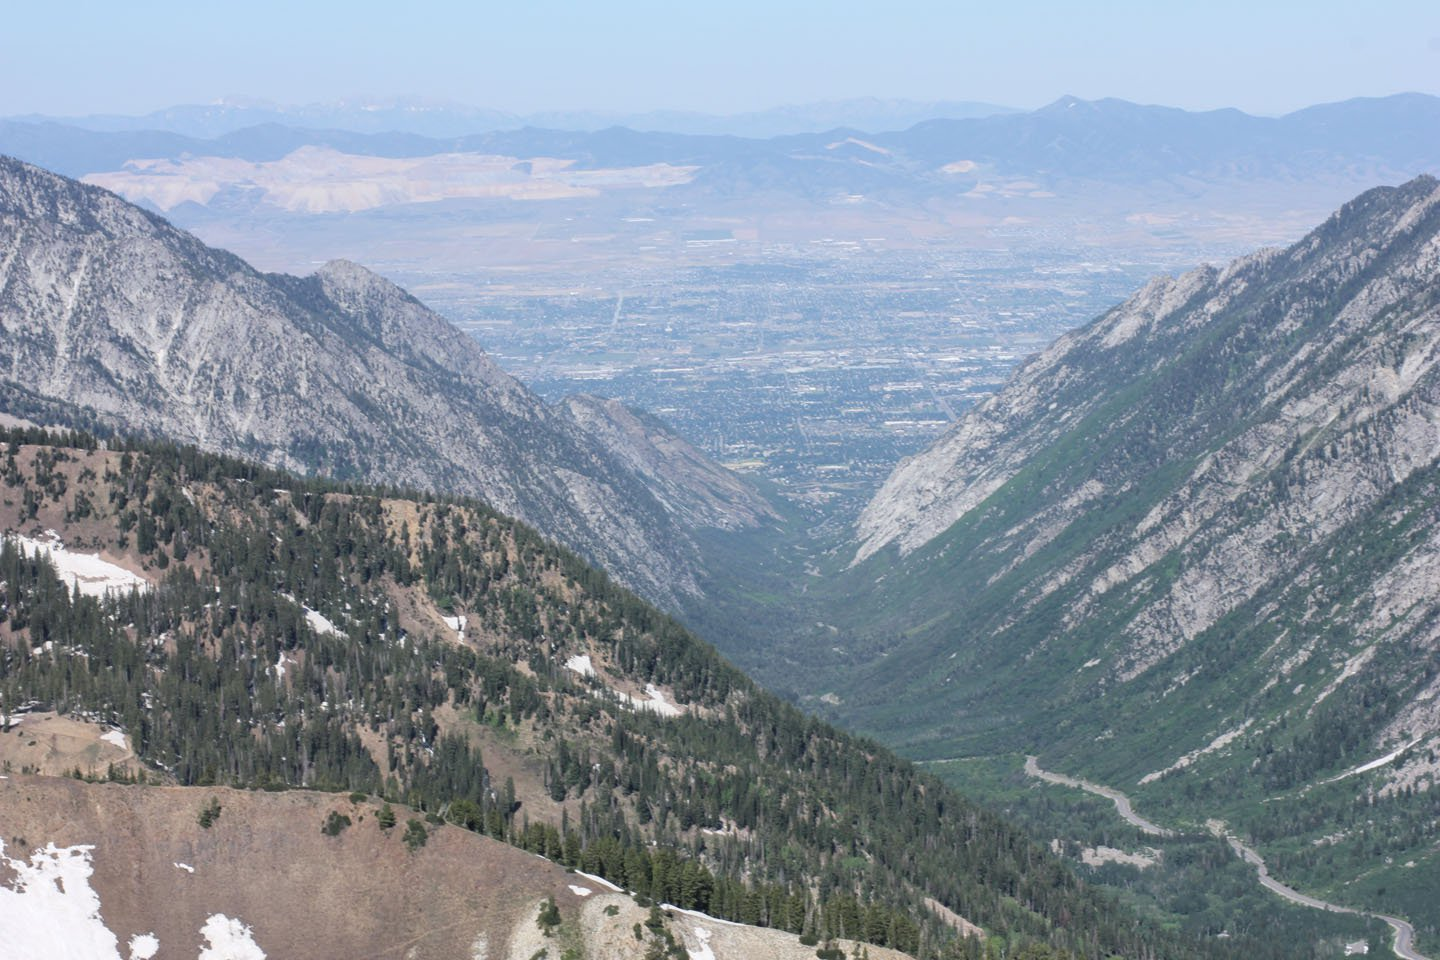 The valley from the top of Baldy